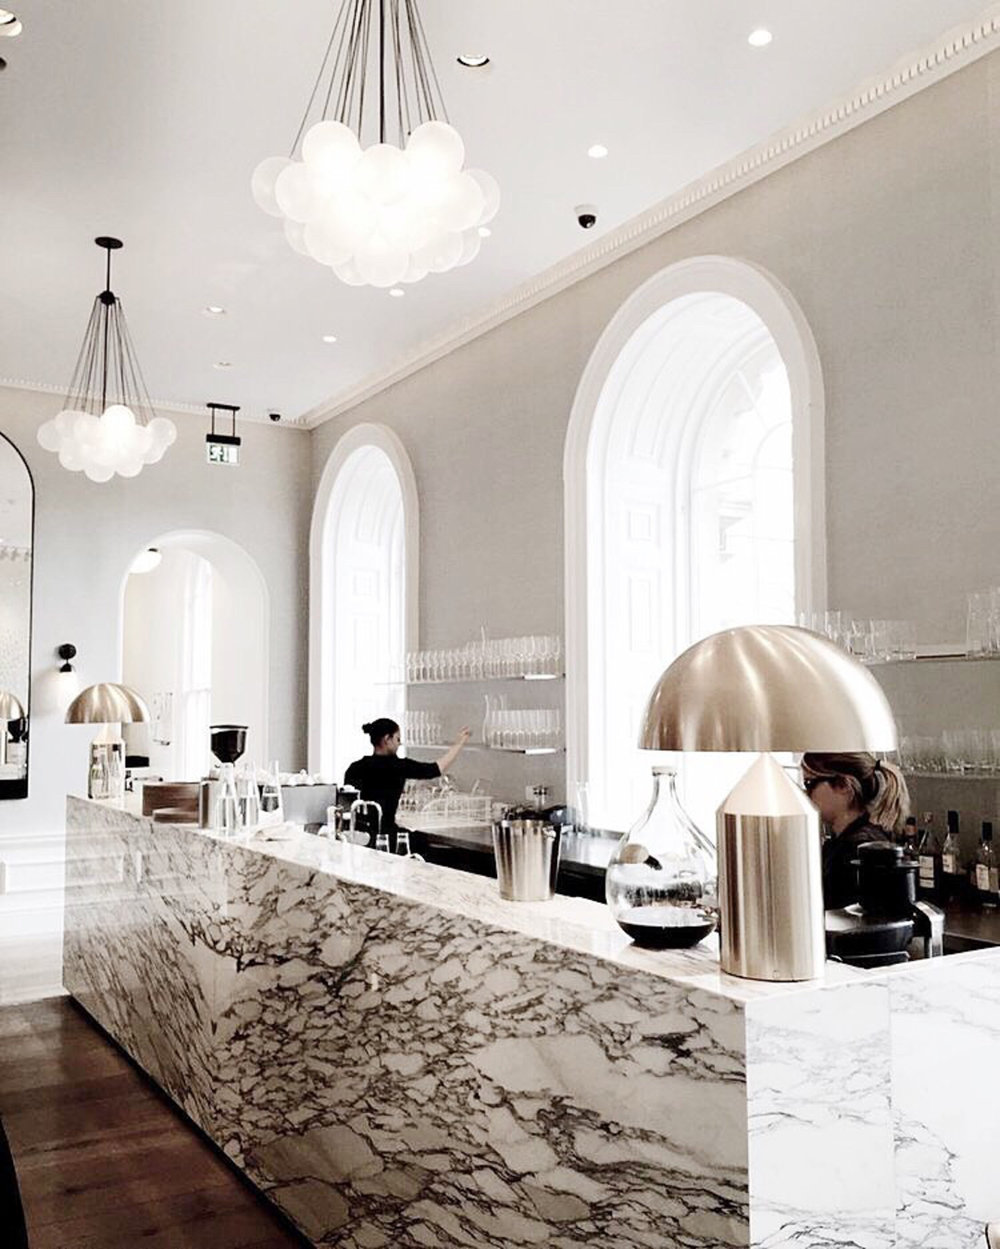 Day-dreaming of a nice little break at a brightly lit, marble-themed cafe 💭